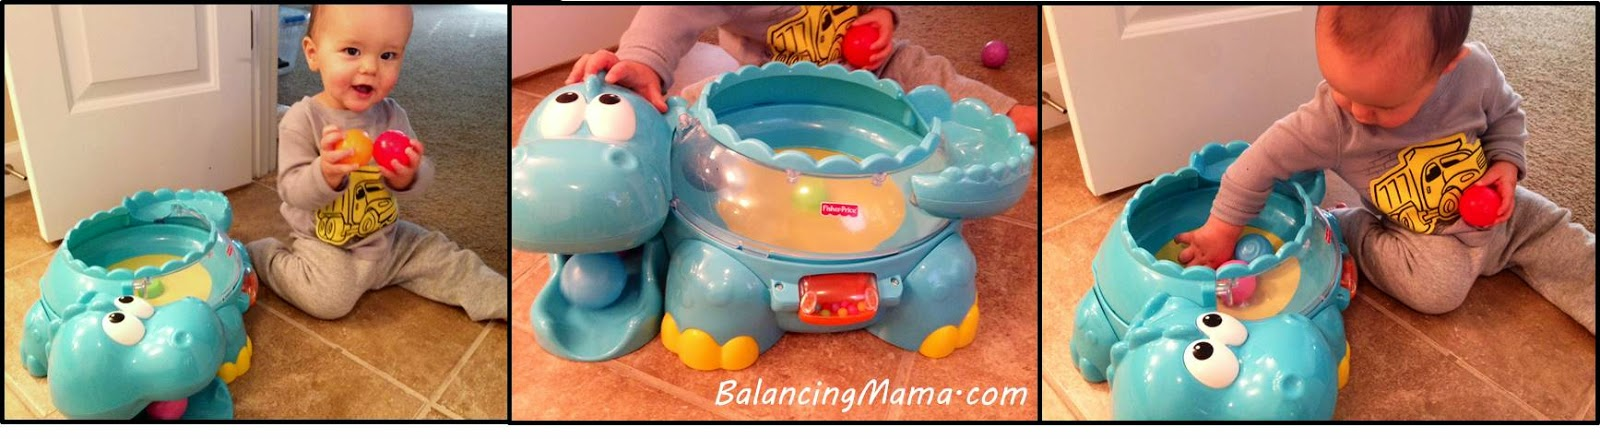 18 Month Old Toys For A Ball : From balancingmama baby boy s current favorite toys